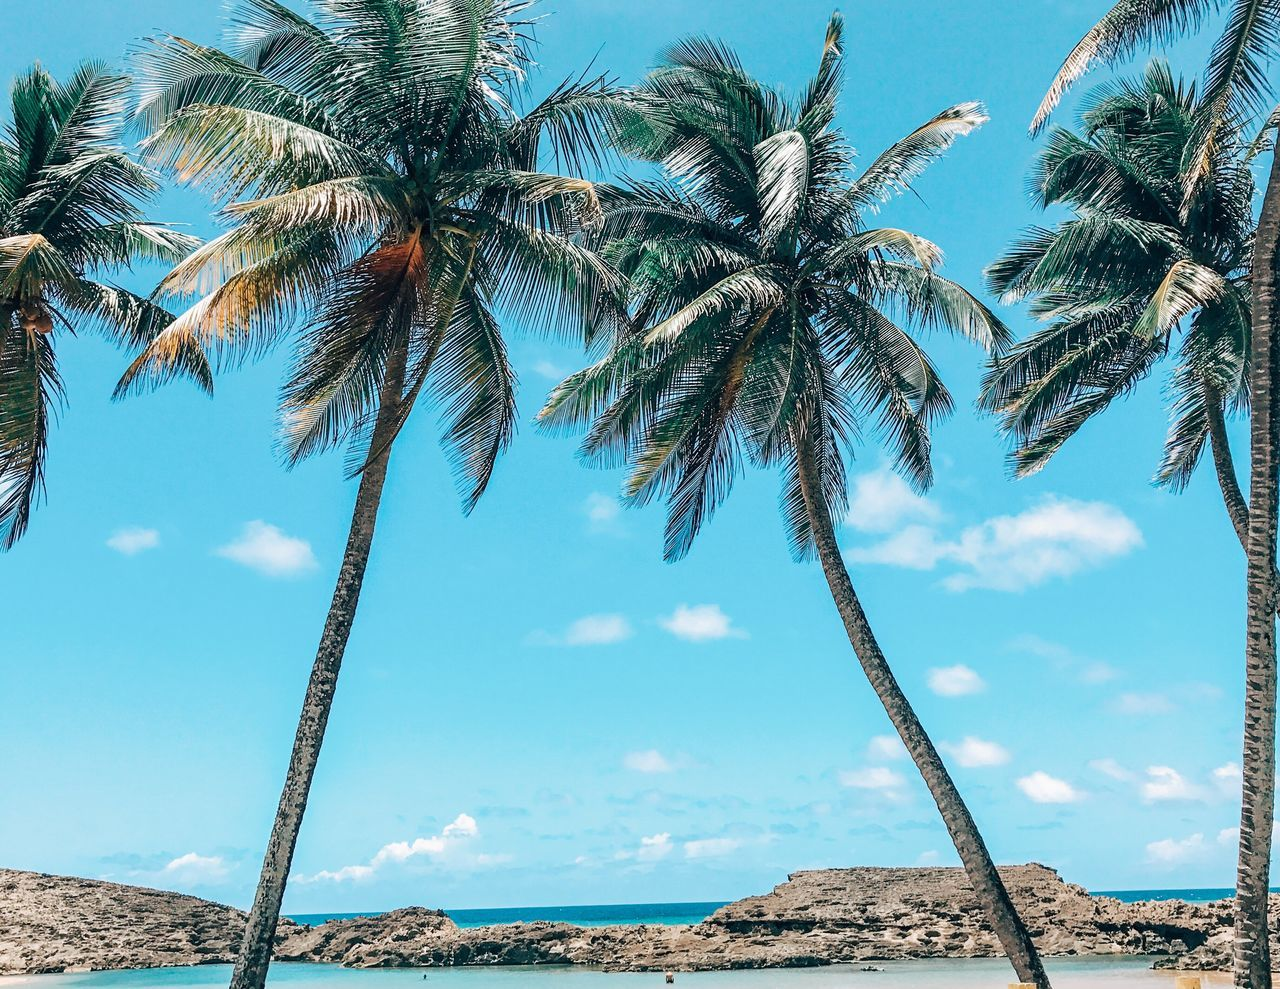 Puerto Rico Palm Tree Tree Sky Low Angle View Nature Day Beauty In Nature Scenics Outdoors Tree Trunk Tranquil Scene Blue Tranquility Growth No People Cloud - Sky Beach Ocean View Island Landscape Horizon Over Water